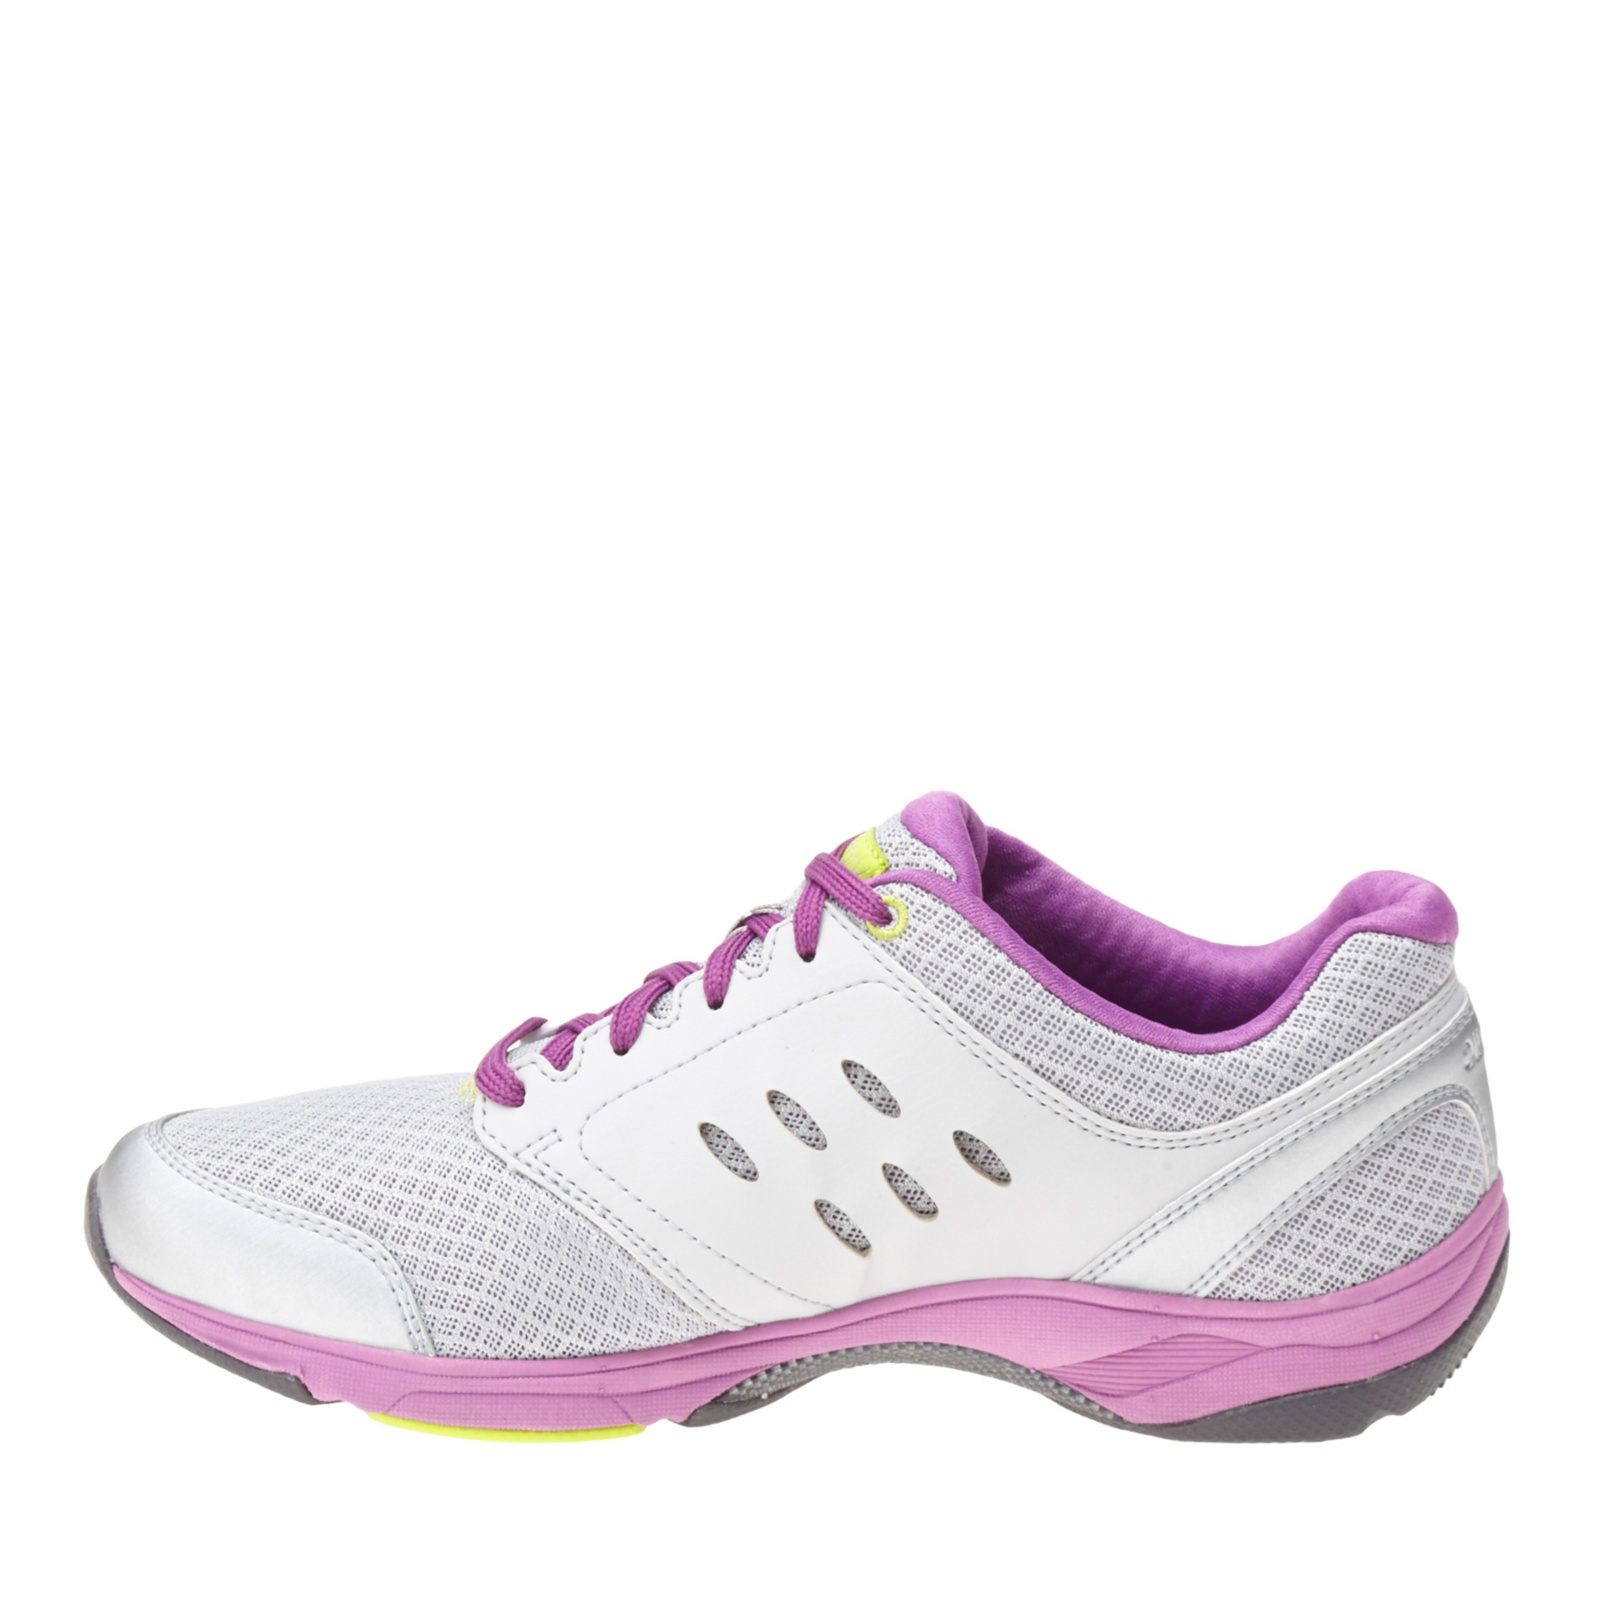 vionic with orthaheel technology venture walking shoes ebay